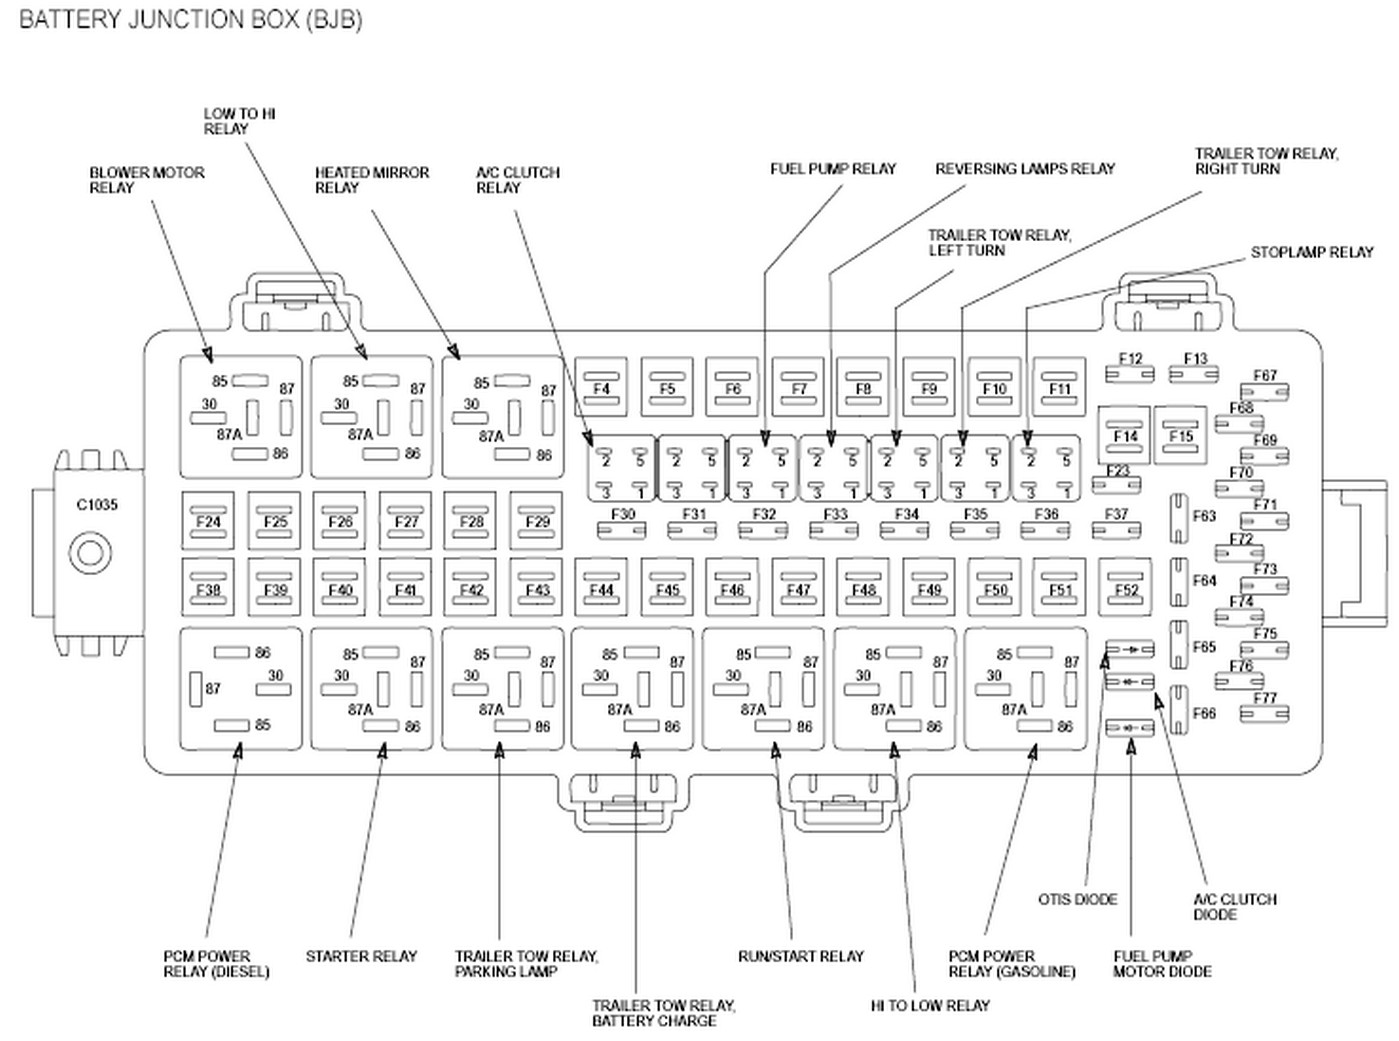 Uk Fuse Box Explained Wiring Library 08 Hummer H2 2008 Ford F450 Diagram Schematics Expedition Location